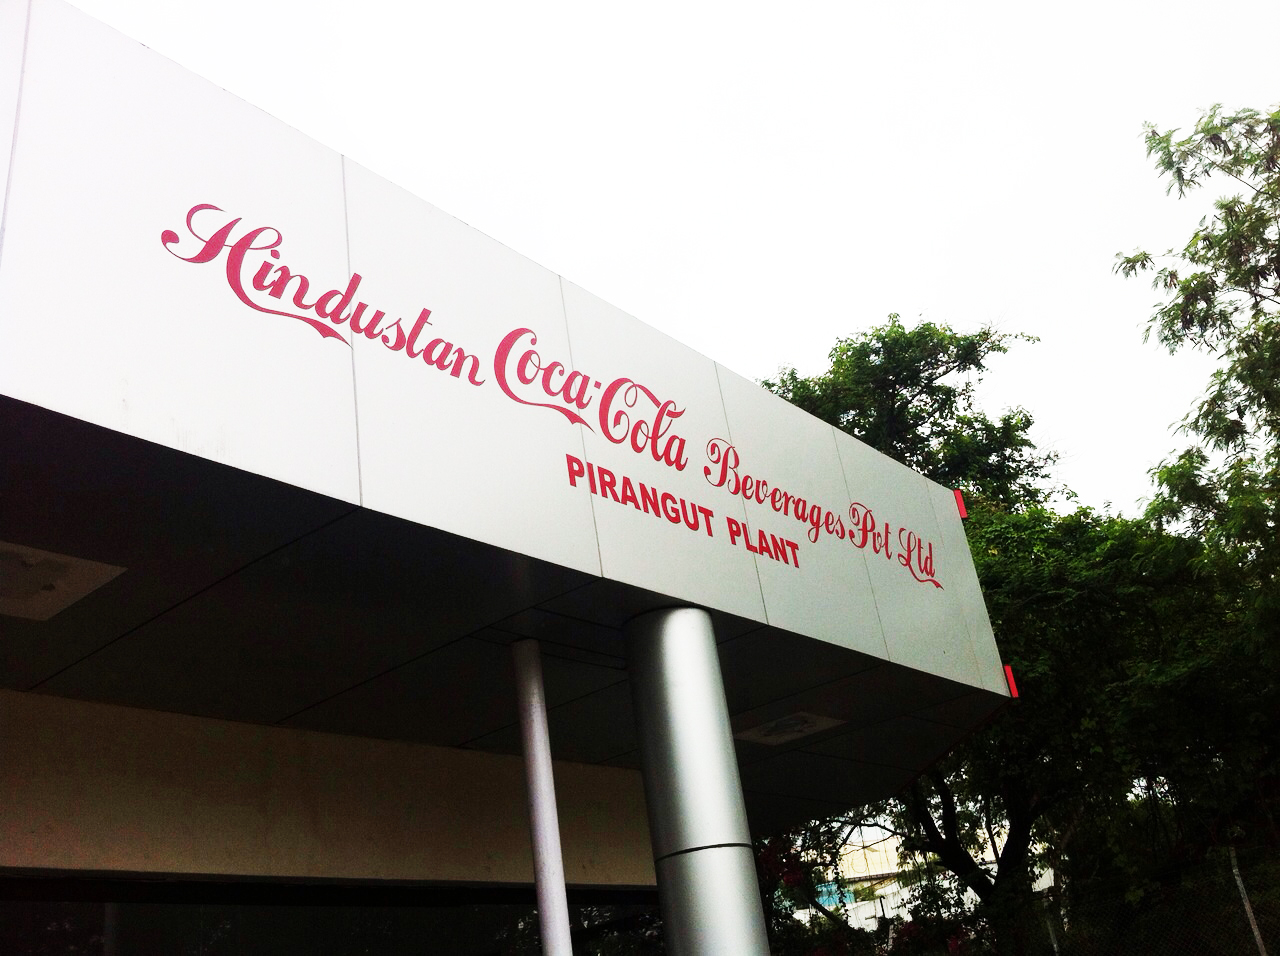 coke s operations in india Coke cola in india in: business and  may have been the reason causing problems for coke's operations in india。 (3) both countries may have different ways of .